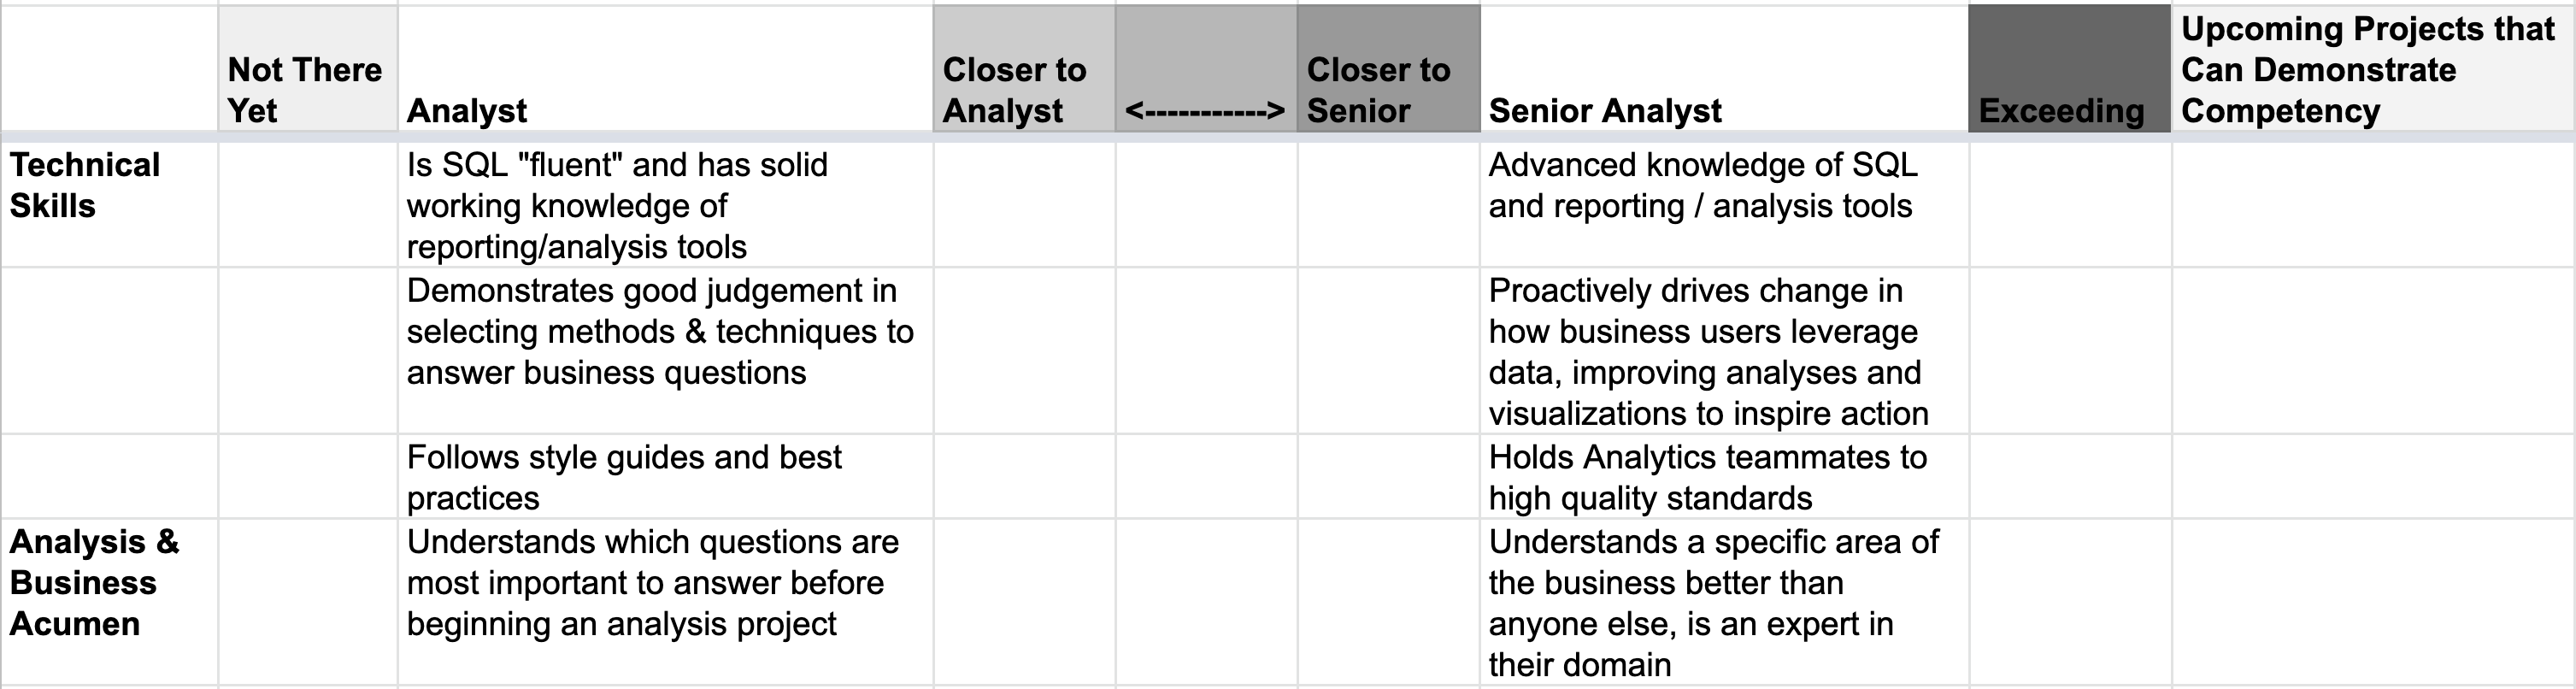 """Spreadsheet with technical and business skills for various levels, and a rubric from """"not there yet"""" to """"exceeding expectations"""" for each skill."""